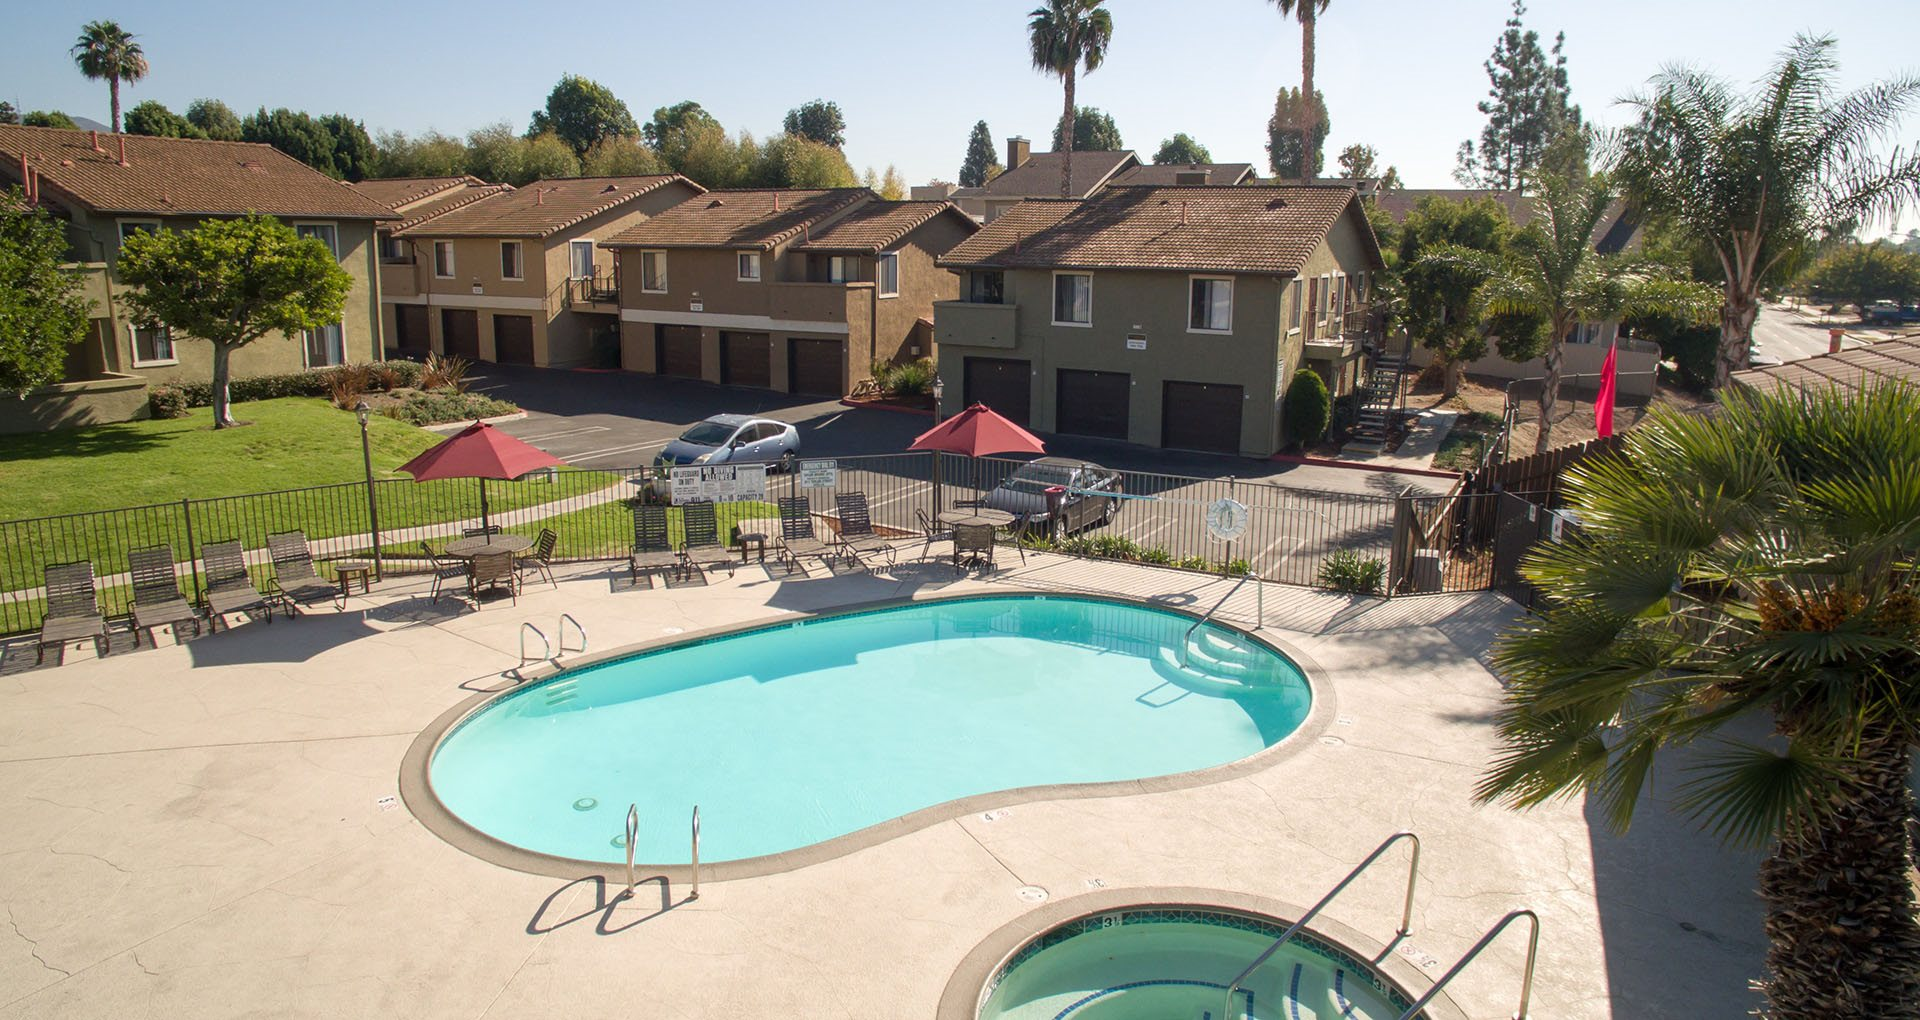 Pool view with Patio Furniture Vista California 92084 l Taylor Brook Apts for rent